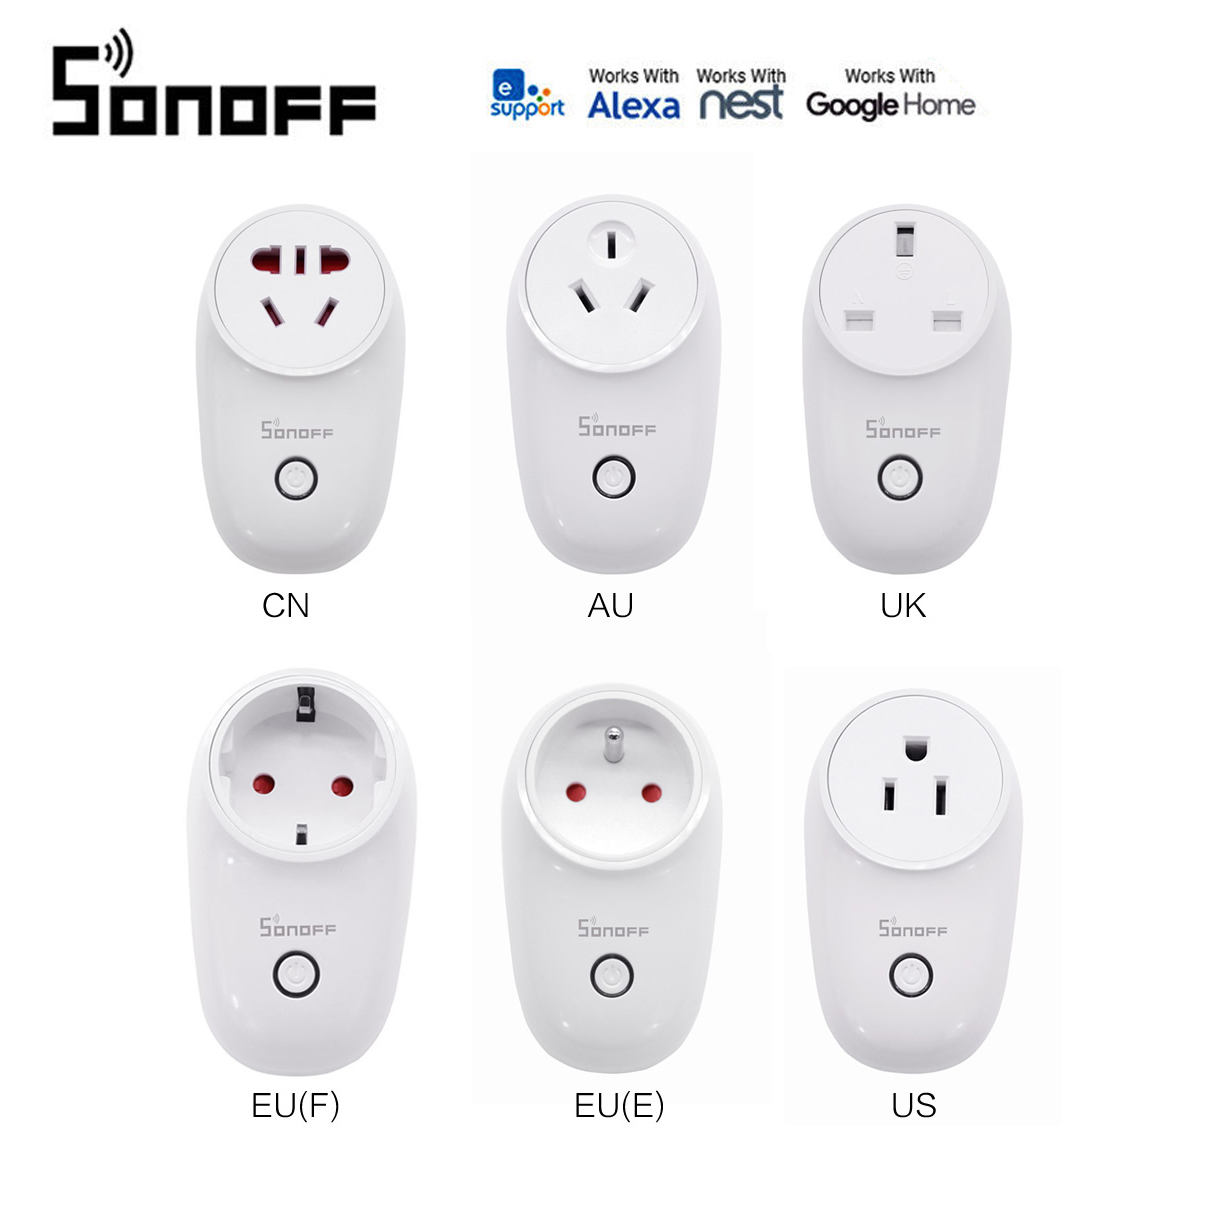 Sonoff S26 WiFi Smart Home Plug EU US UK CN AU Automation Kit Home Control Socket Switch Outlet Work With Alexa Google Home